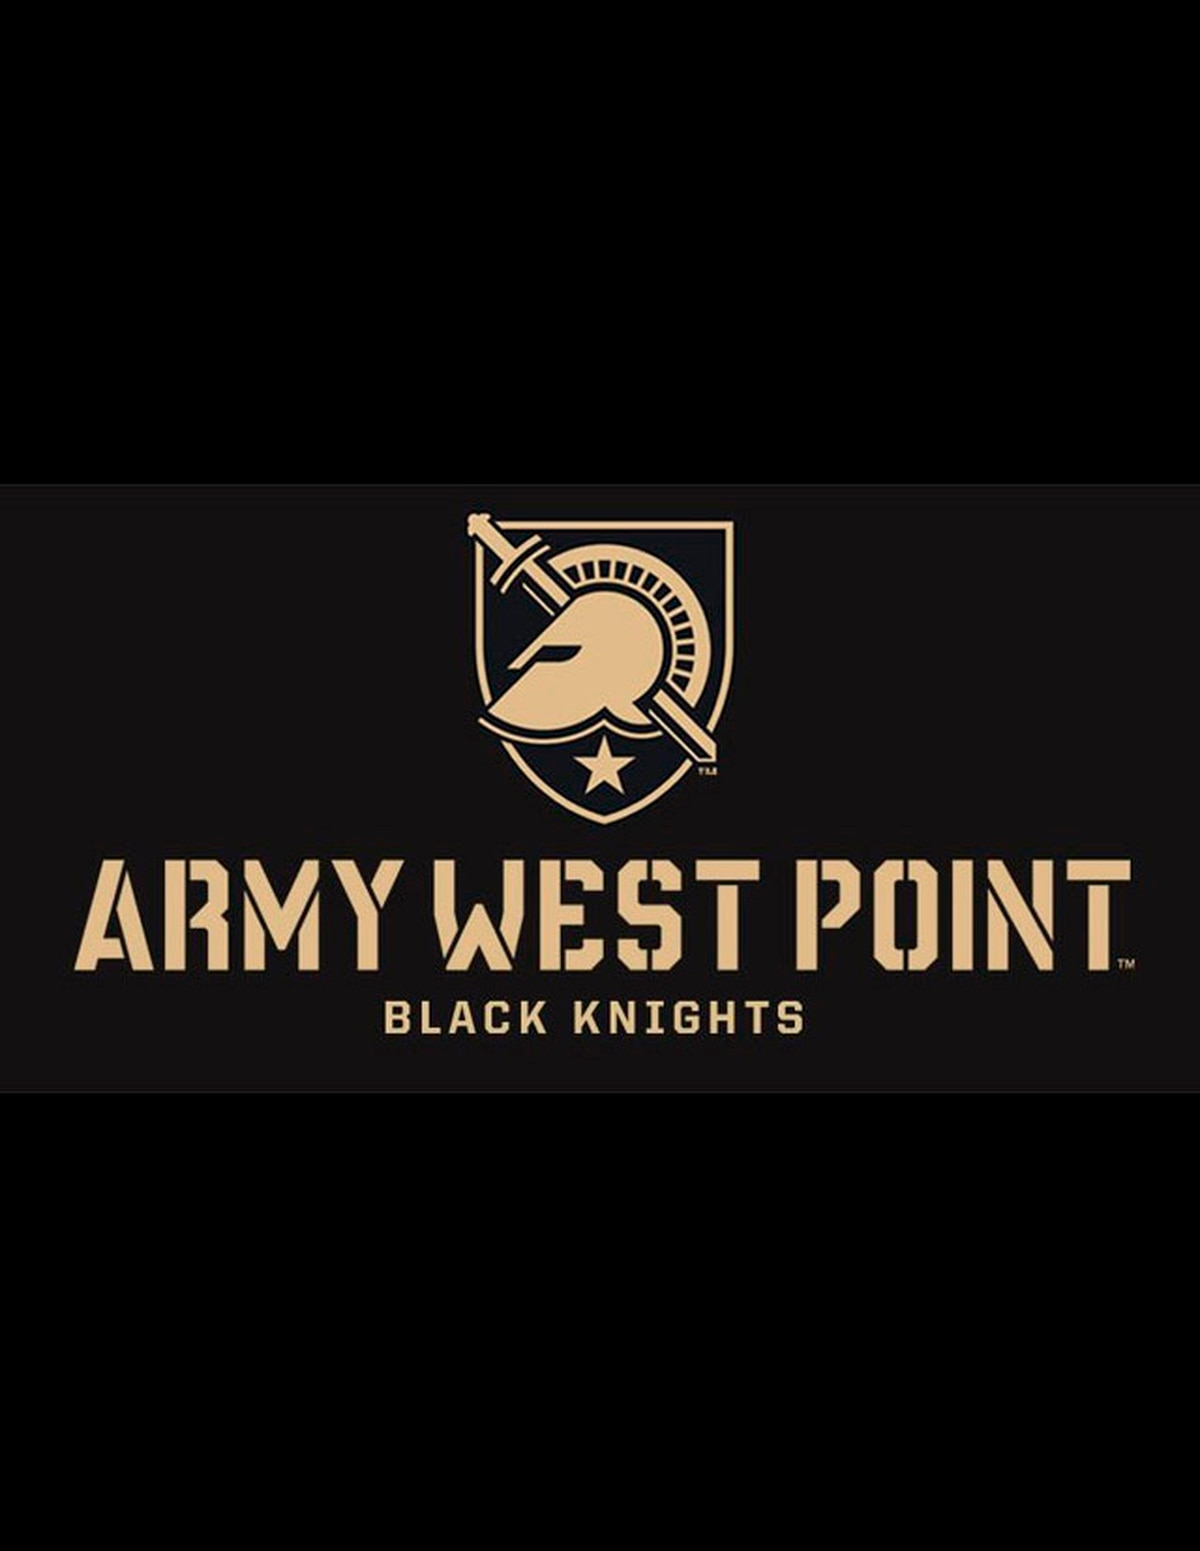 b6c8aee30f3  Army West Point   Experts